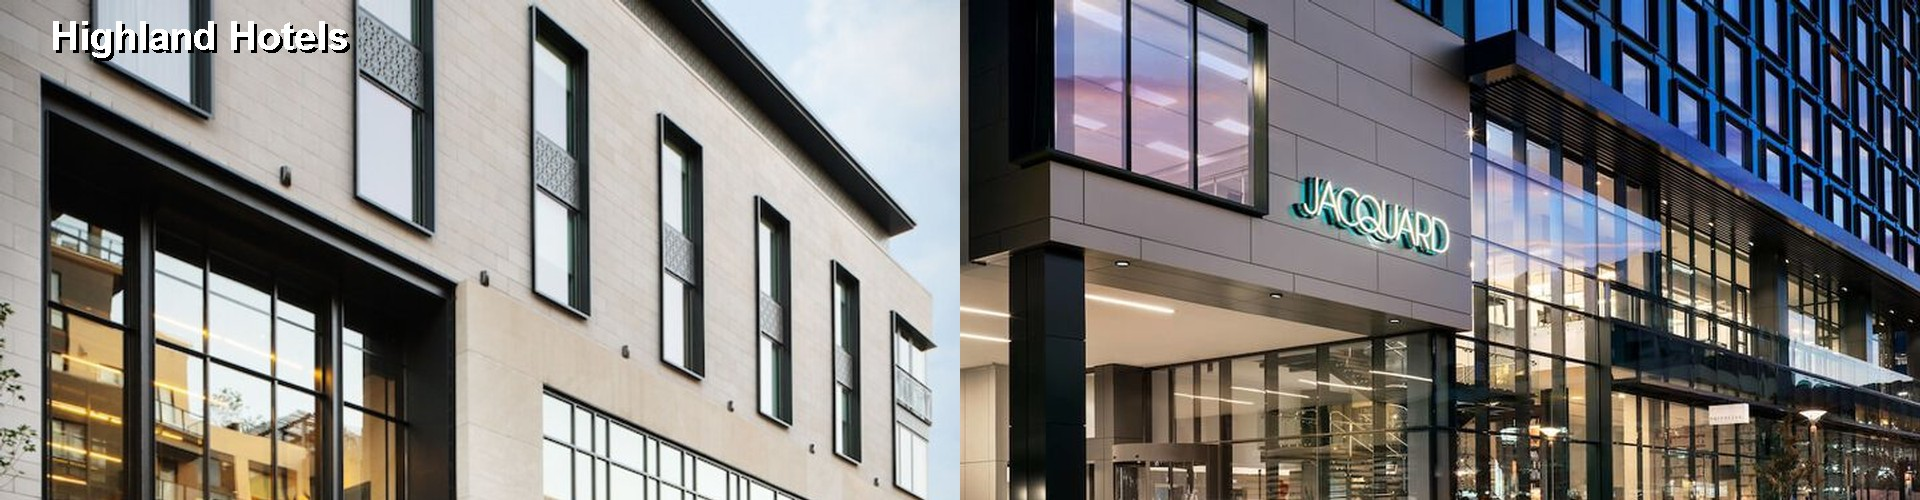 $50+ Hotels Near Highland in Denver (CO)